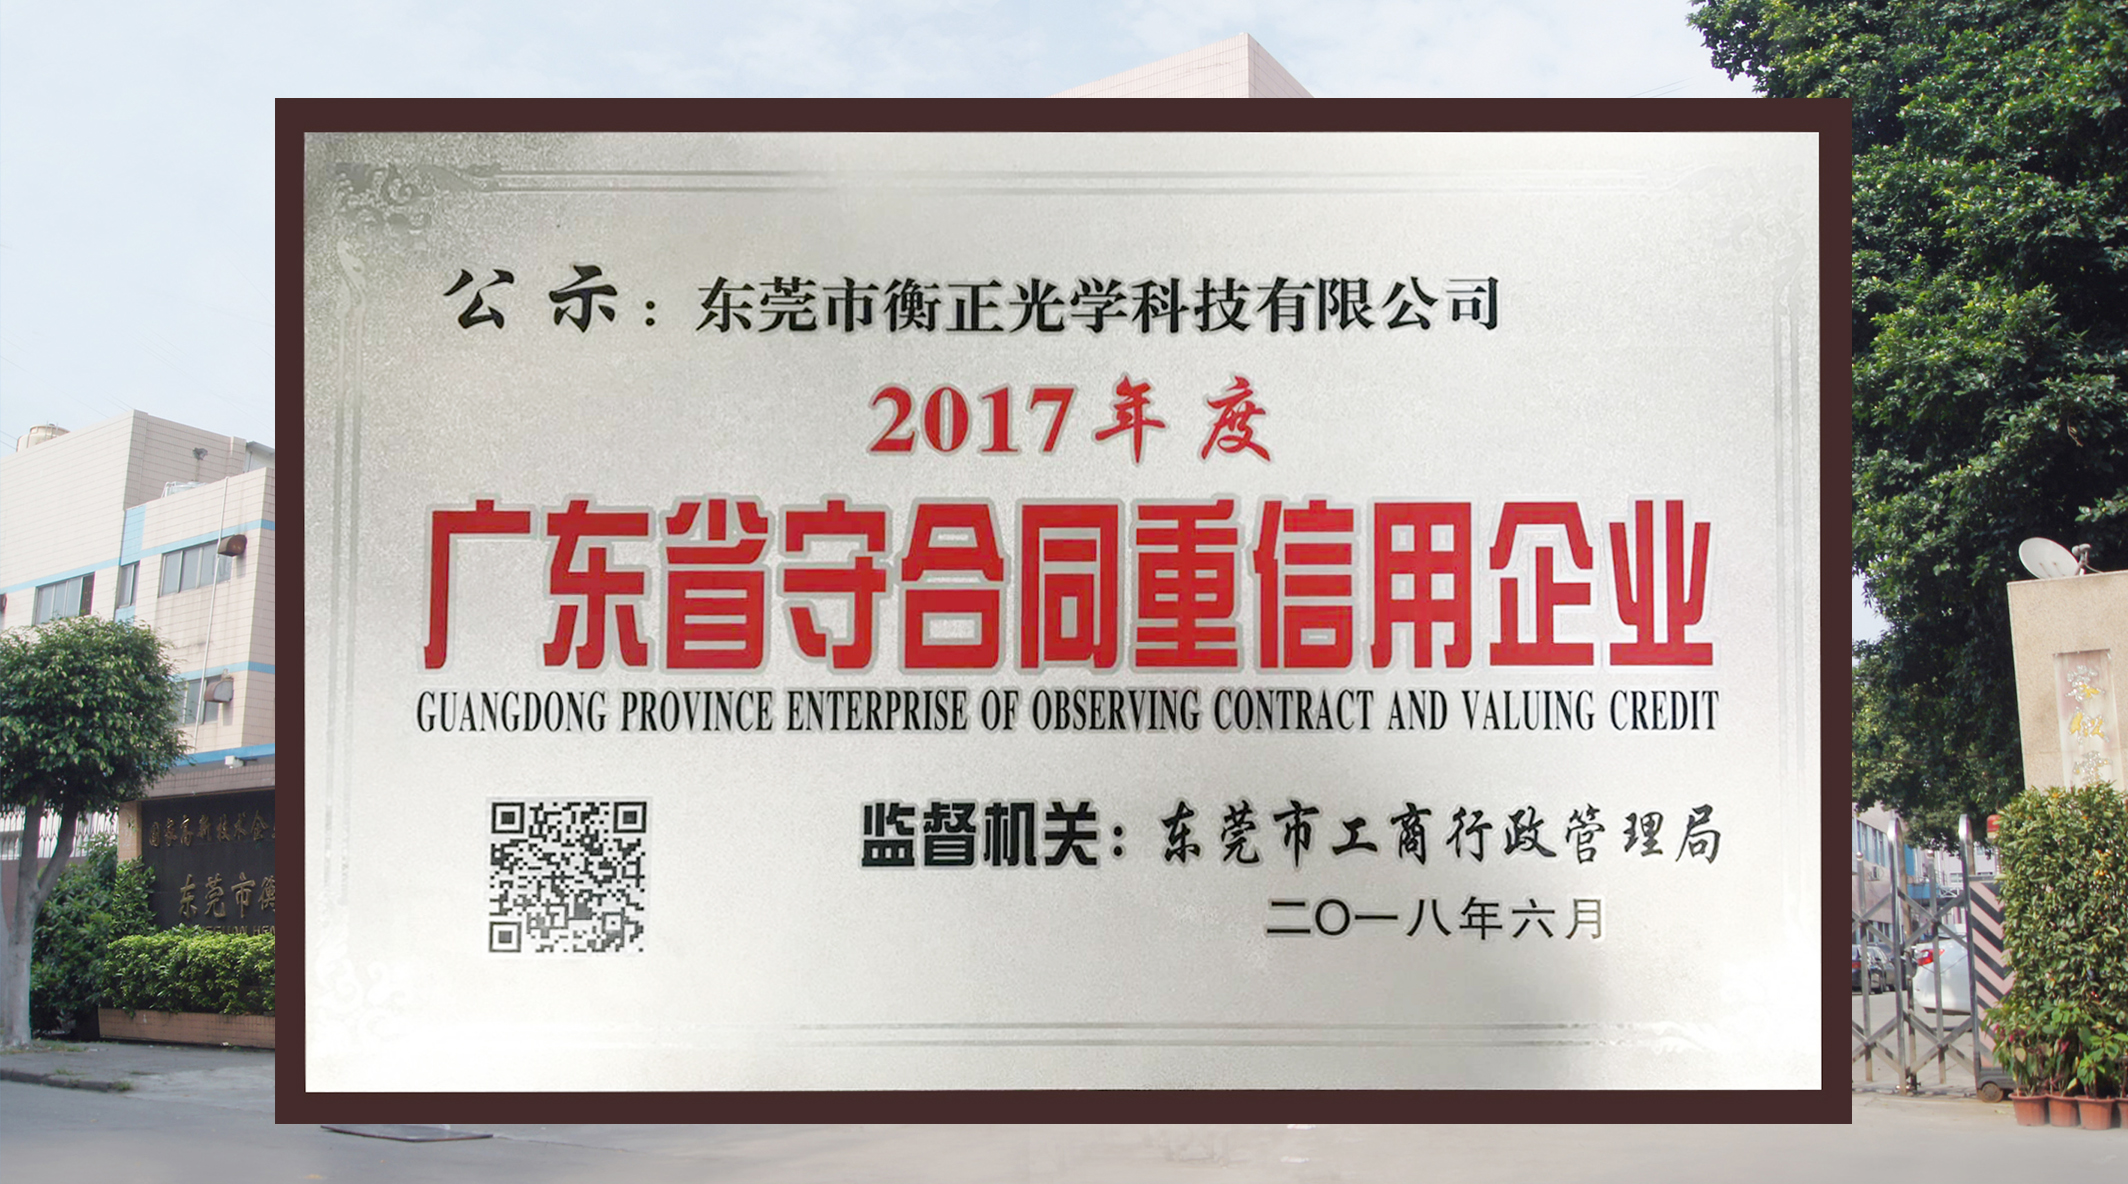 "Dongguan Hengzheng Optical Technology Co., Ltd. won the title of ""2017 Guangdong contract abiding and trustworthy enterprise"" and obtained the honorary certificate."